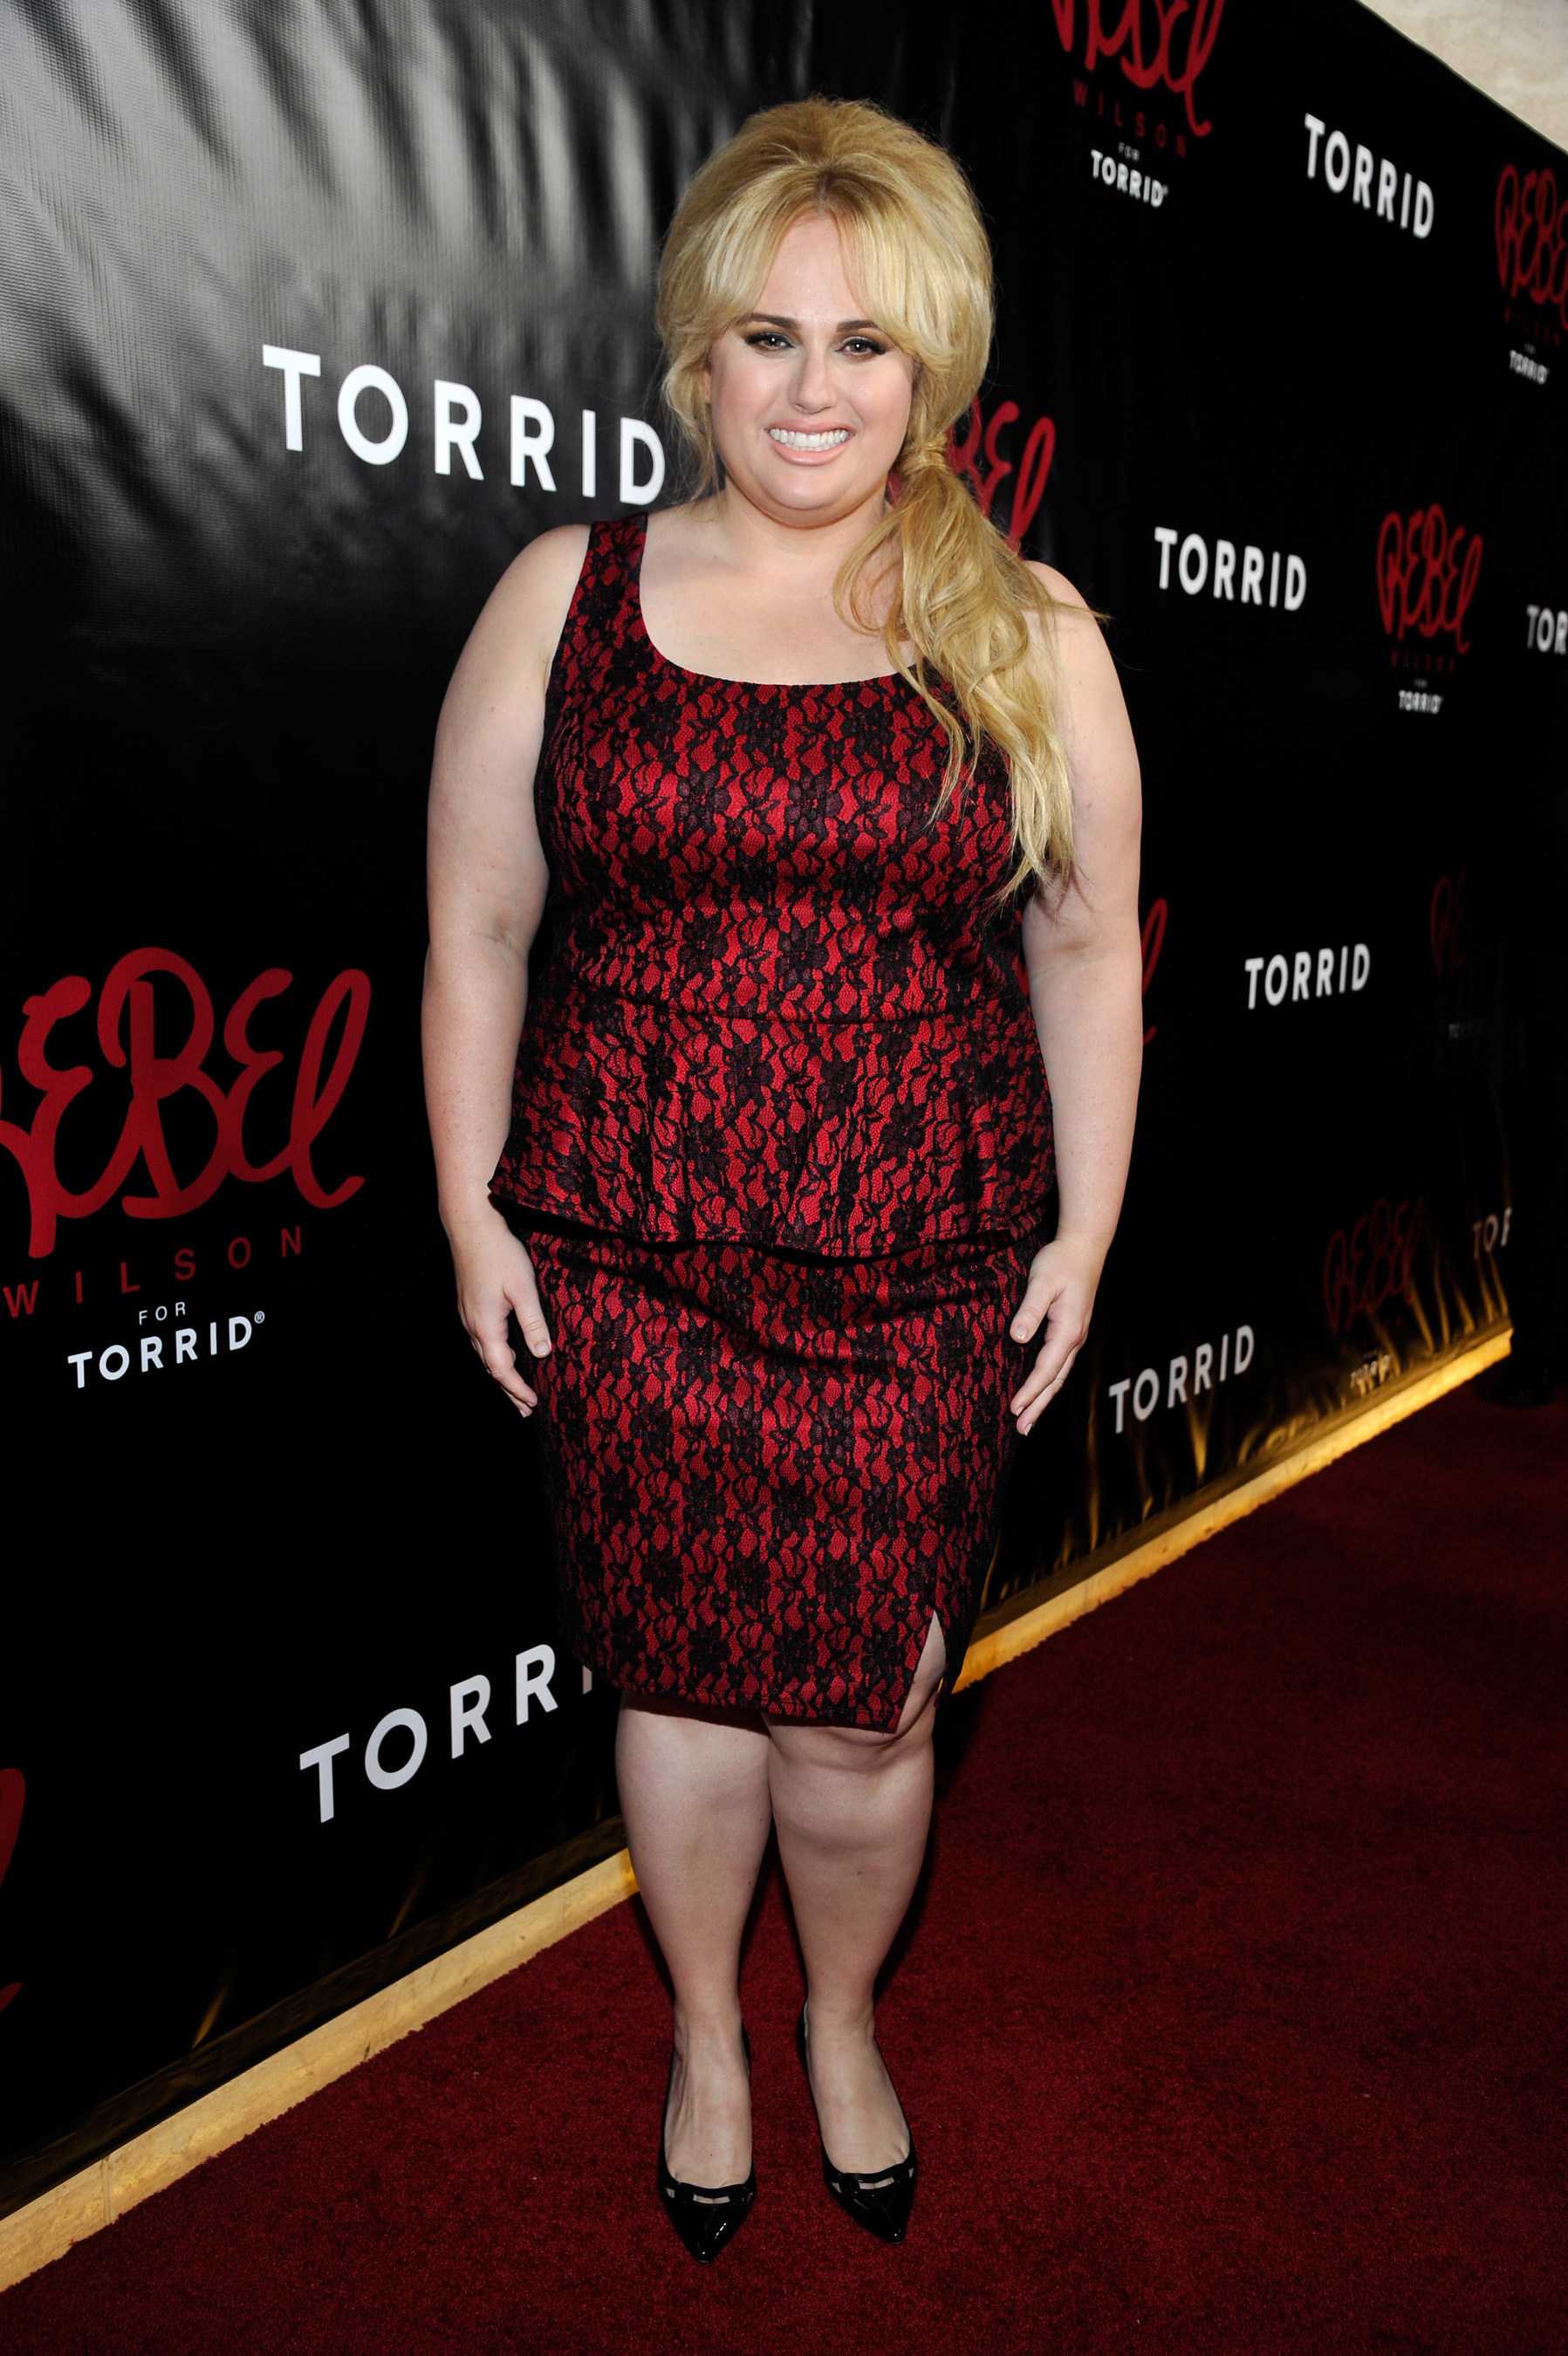 Rebel Wilson Launches REBEL FOR TORRID Fashion Collection at MILK in Hollywood